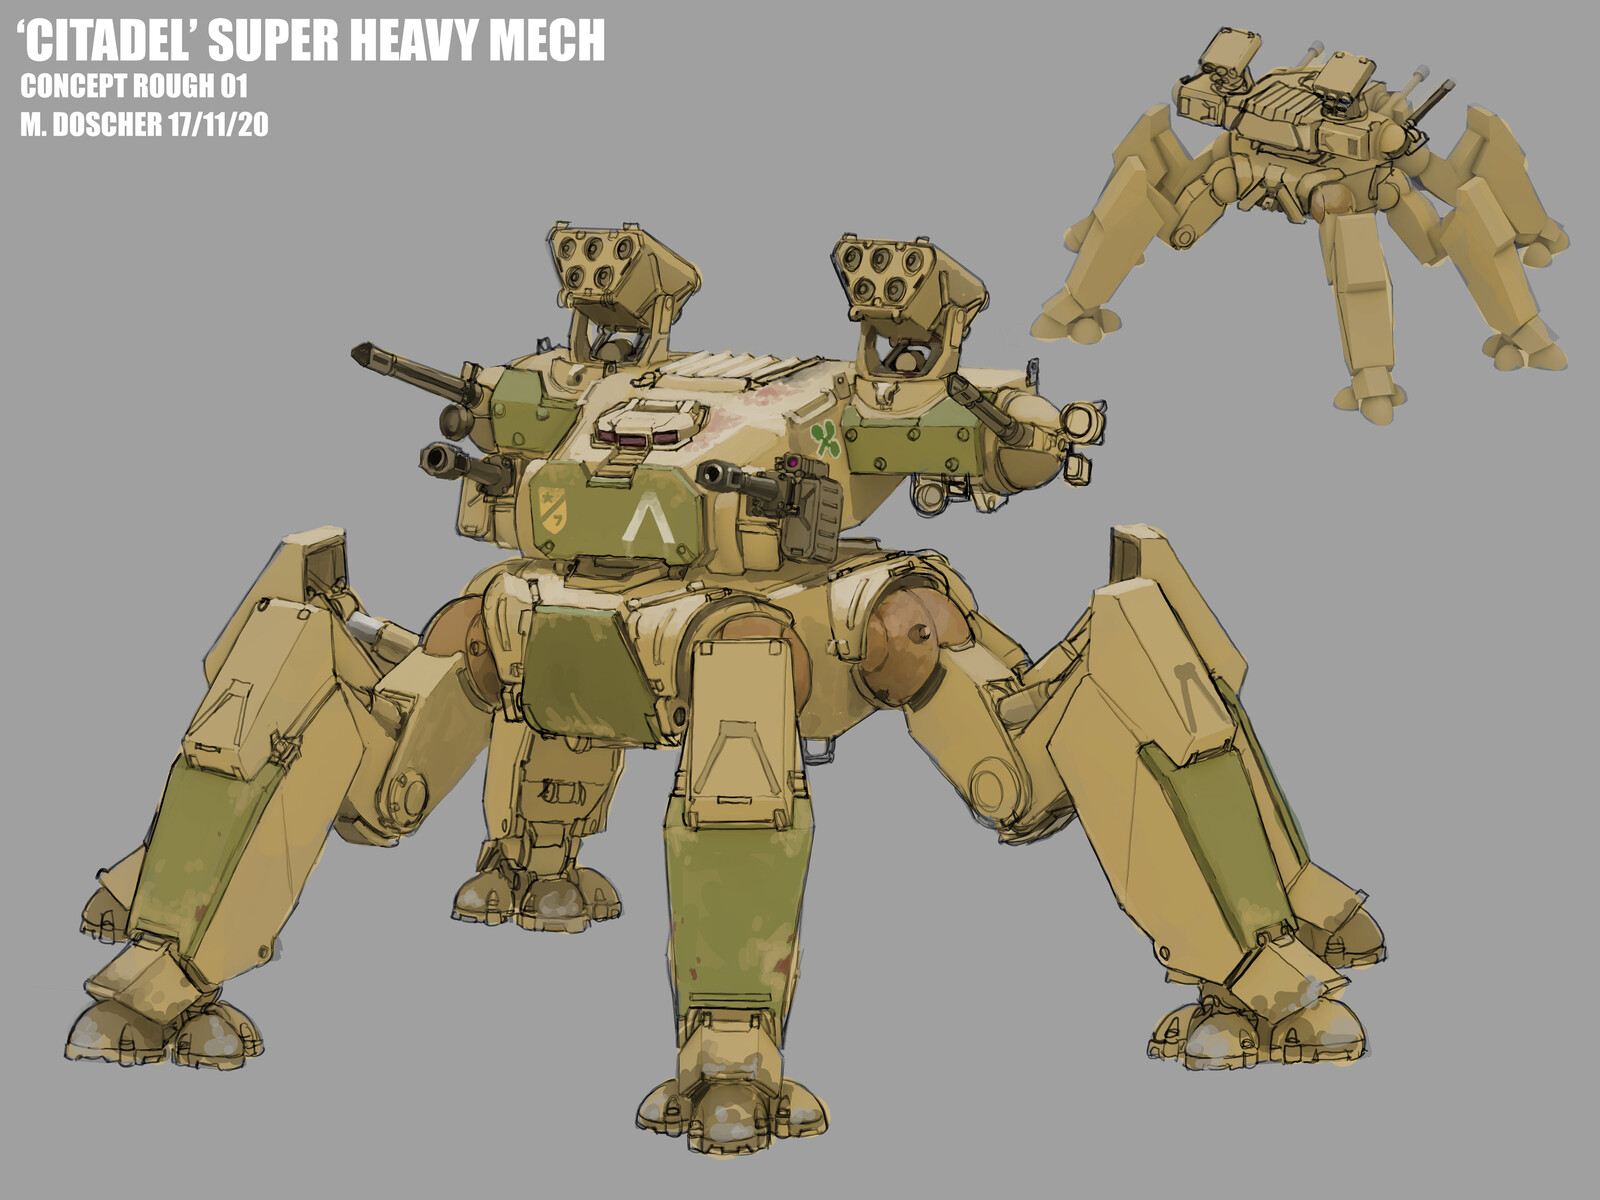 Mech and Armor Concept Lineup 10/2021